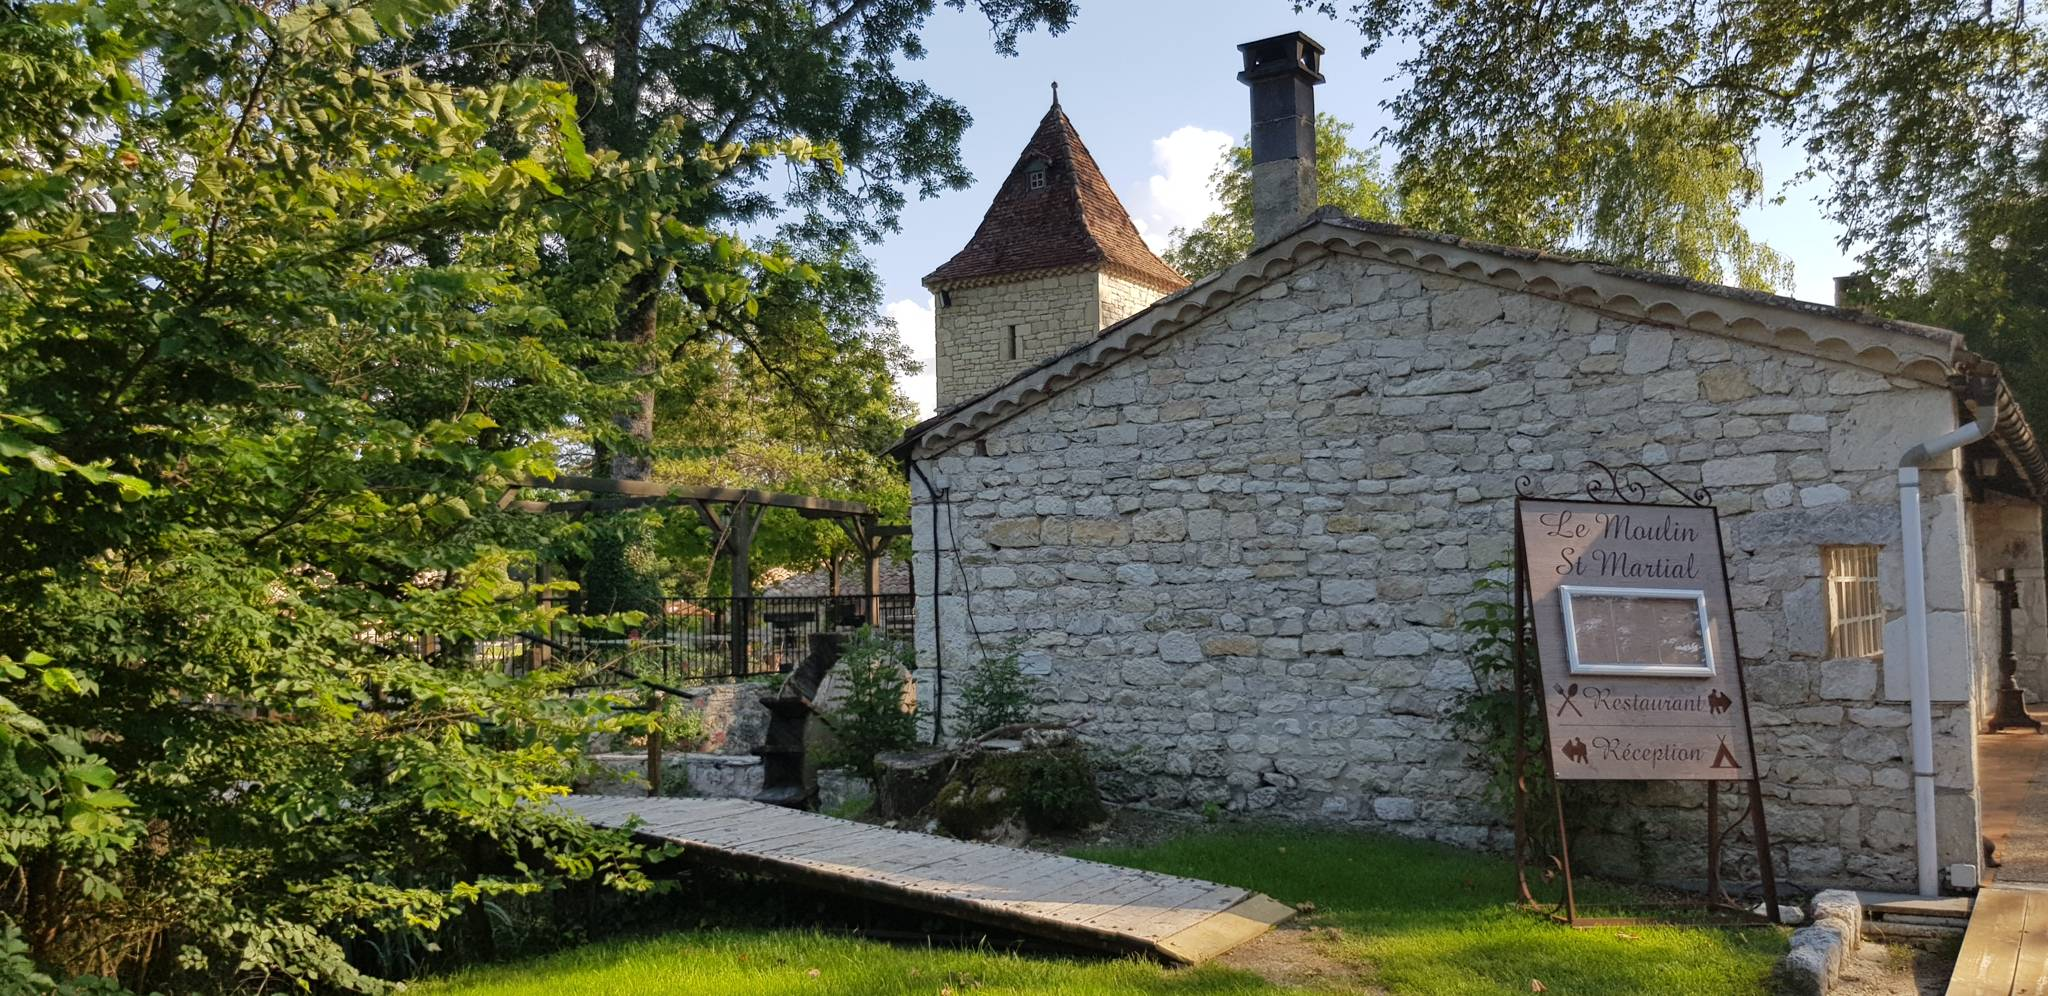 Moulin St martial -2019